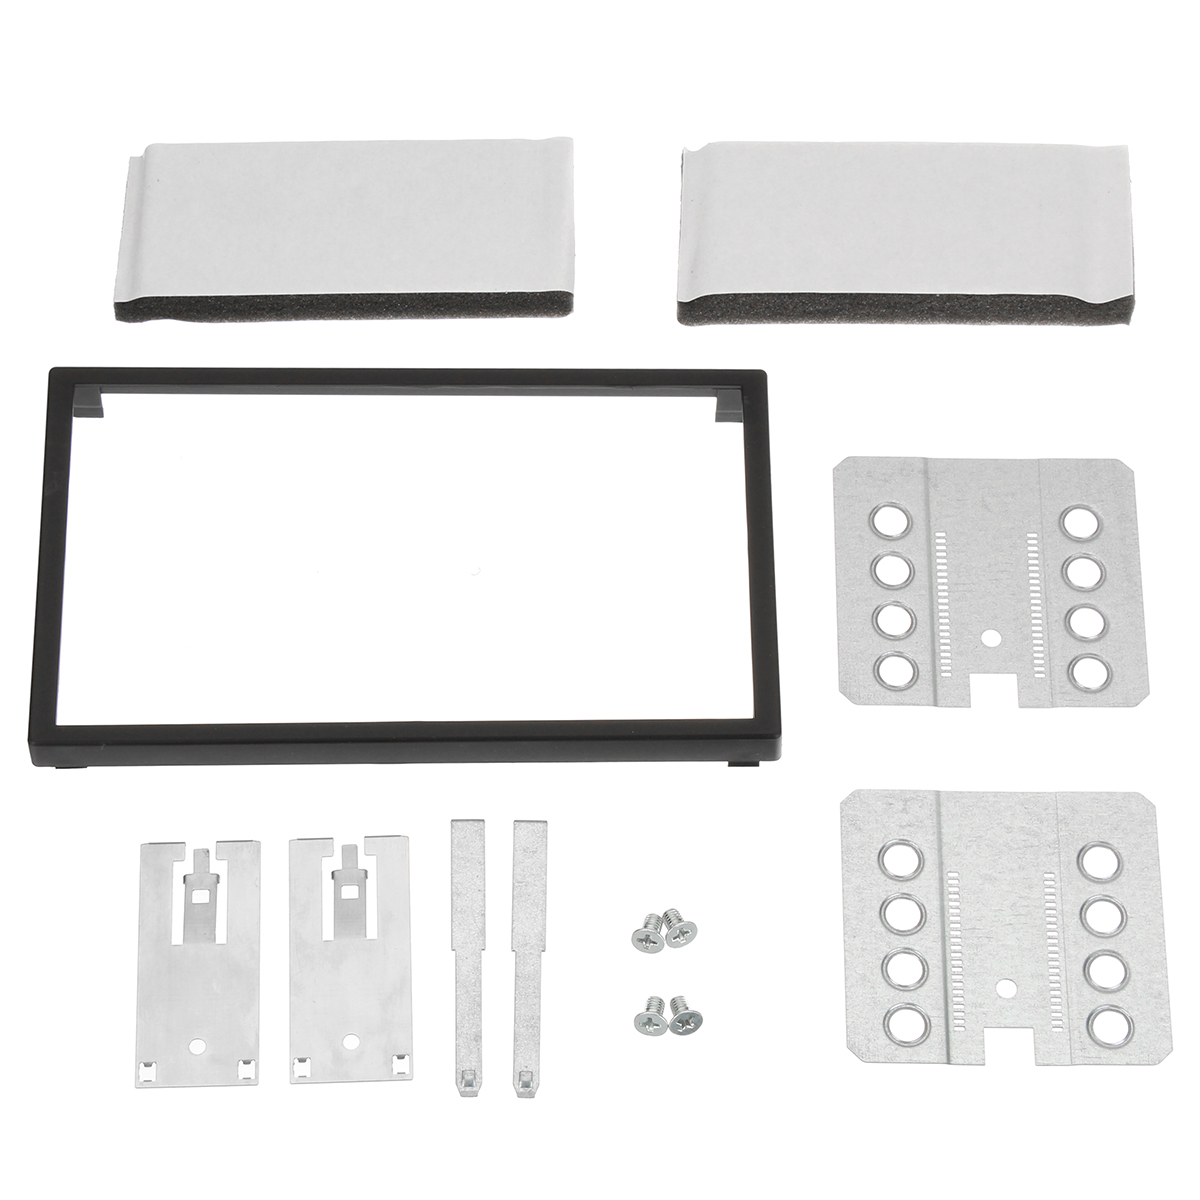 Car 6.2 2 Din 178x100mm Dashboard Panel Universal Installation S